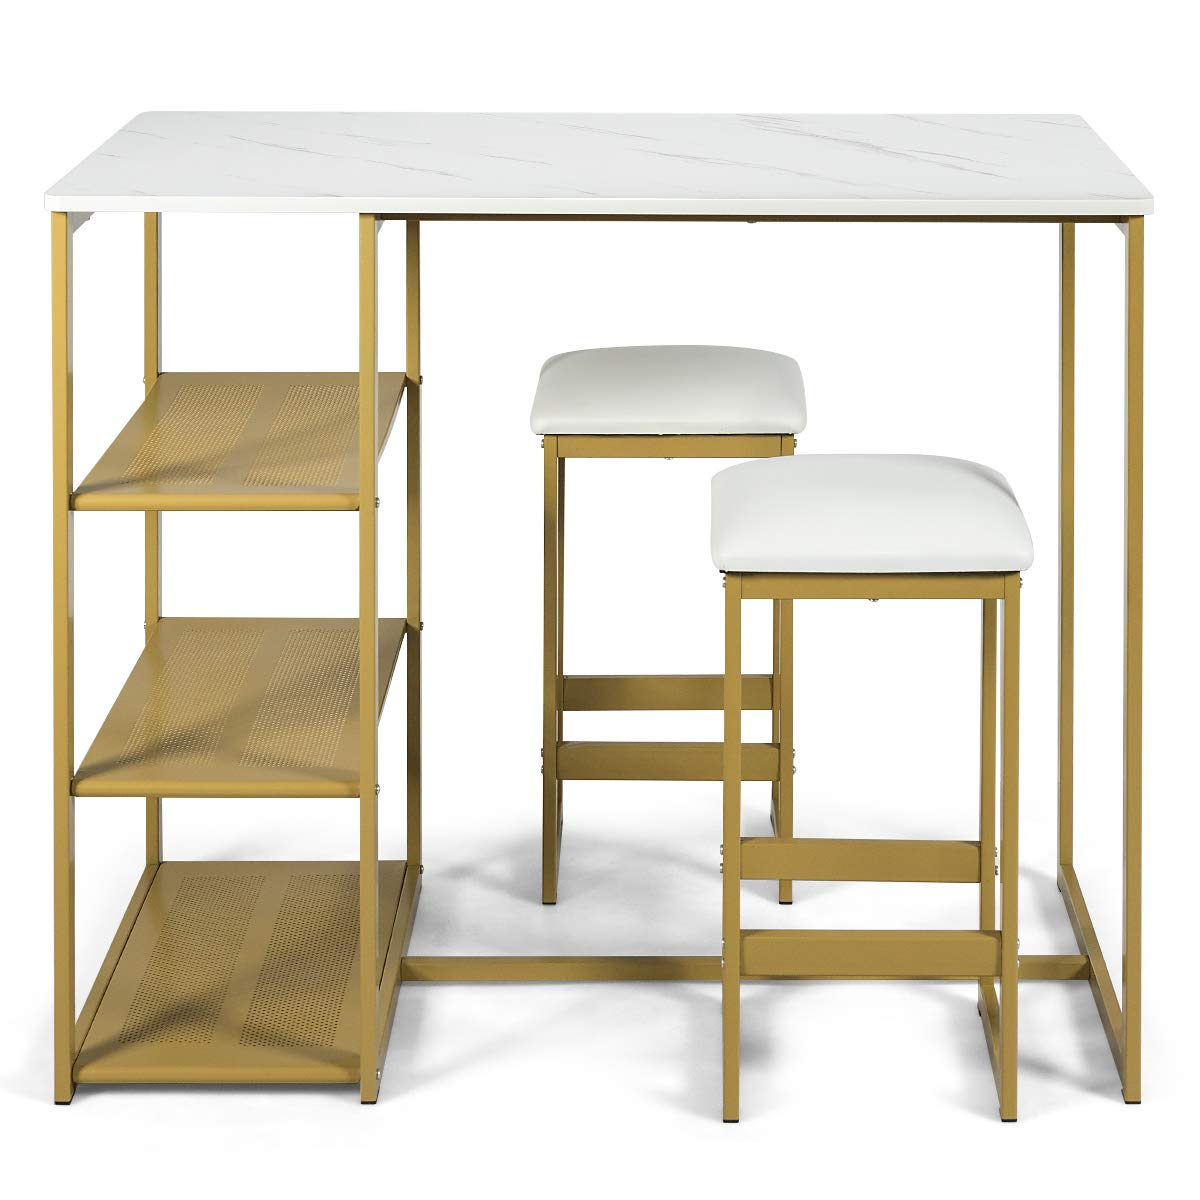 COSTWAY 3-Piece Dining Set, Compact 2 Chairs and Table Set, Kitchen Set with Rectangular Faux Marble, 3 Metal Storage Shelves, Fashionable Simple Style, Kitchen Counter Height Table Set (Gold) by COSTWAY